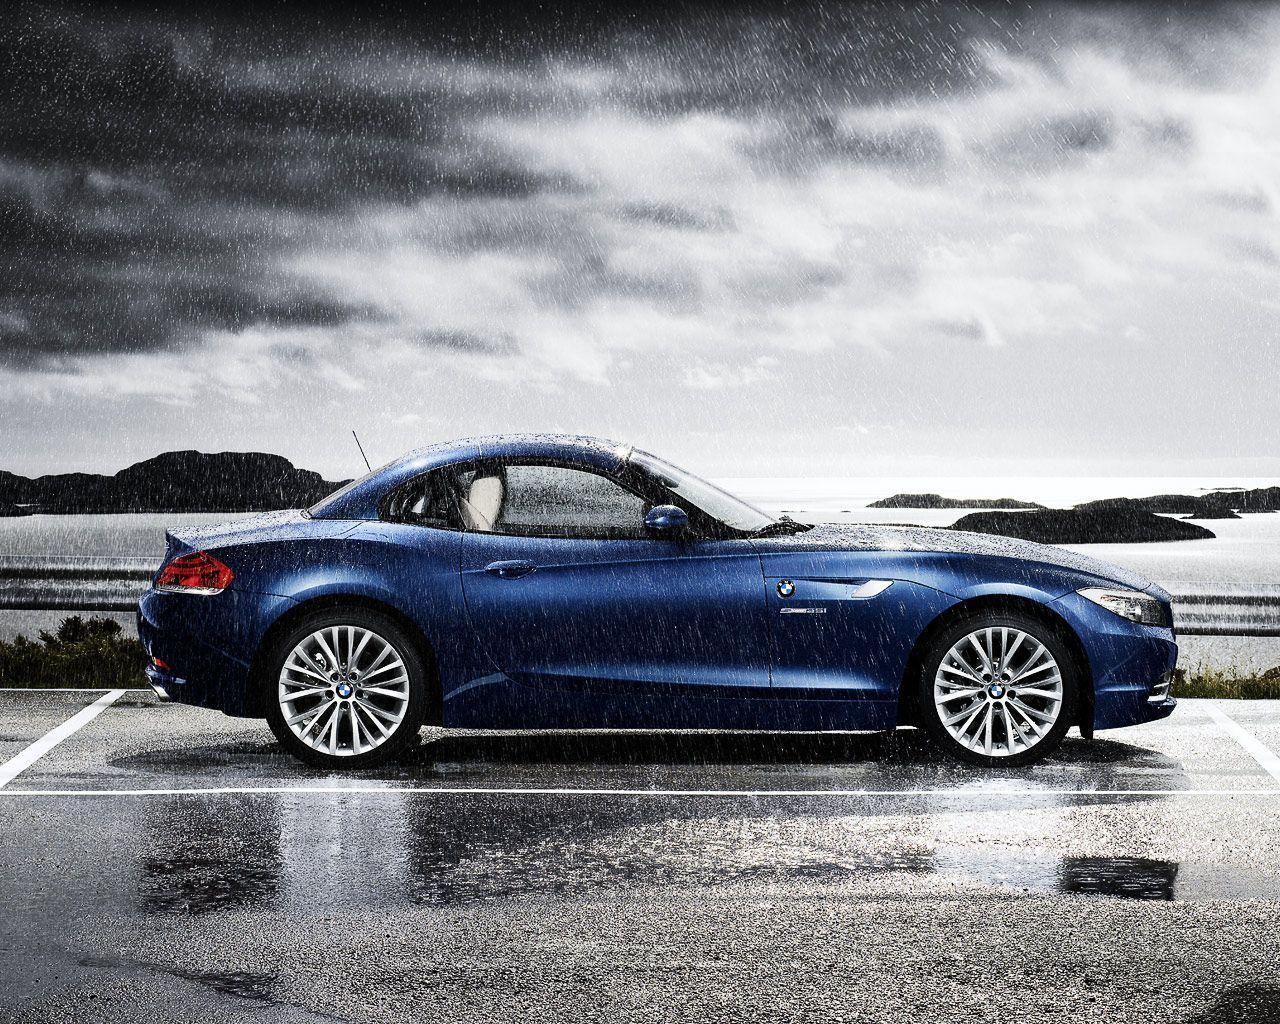 BMW Z4 wallpaper | World Of Cars